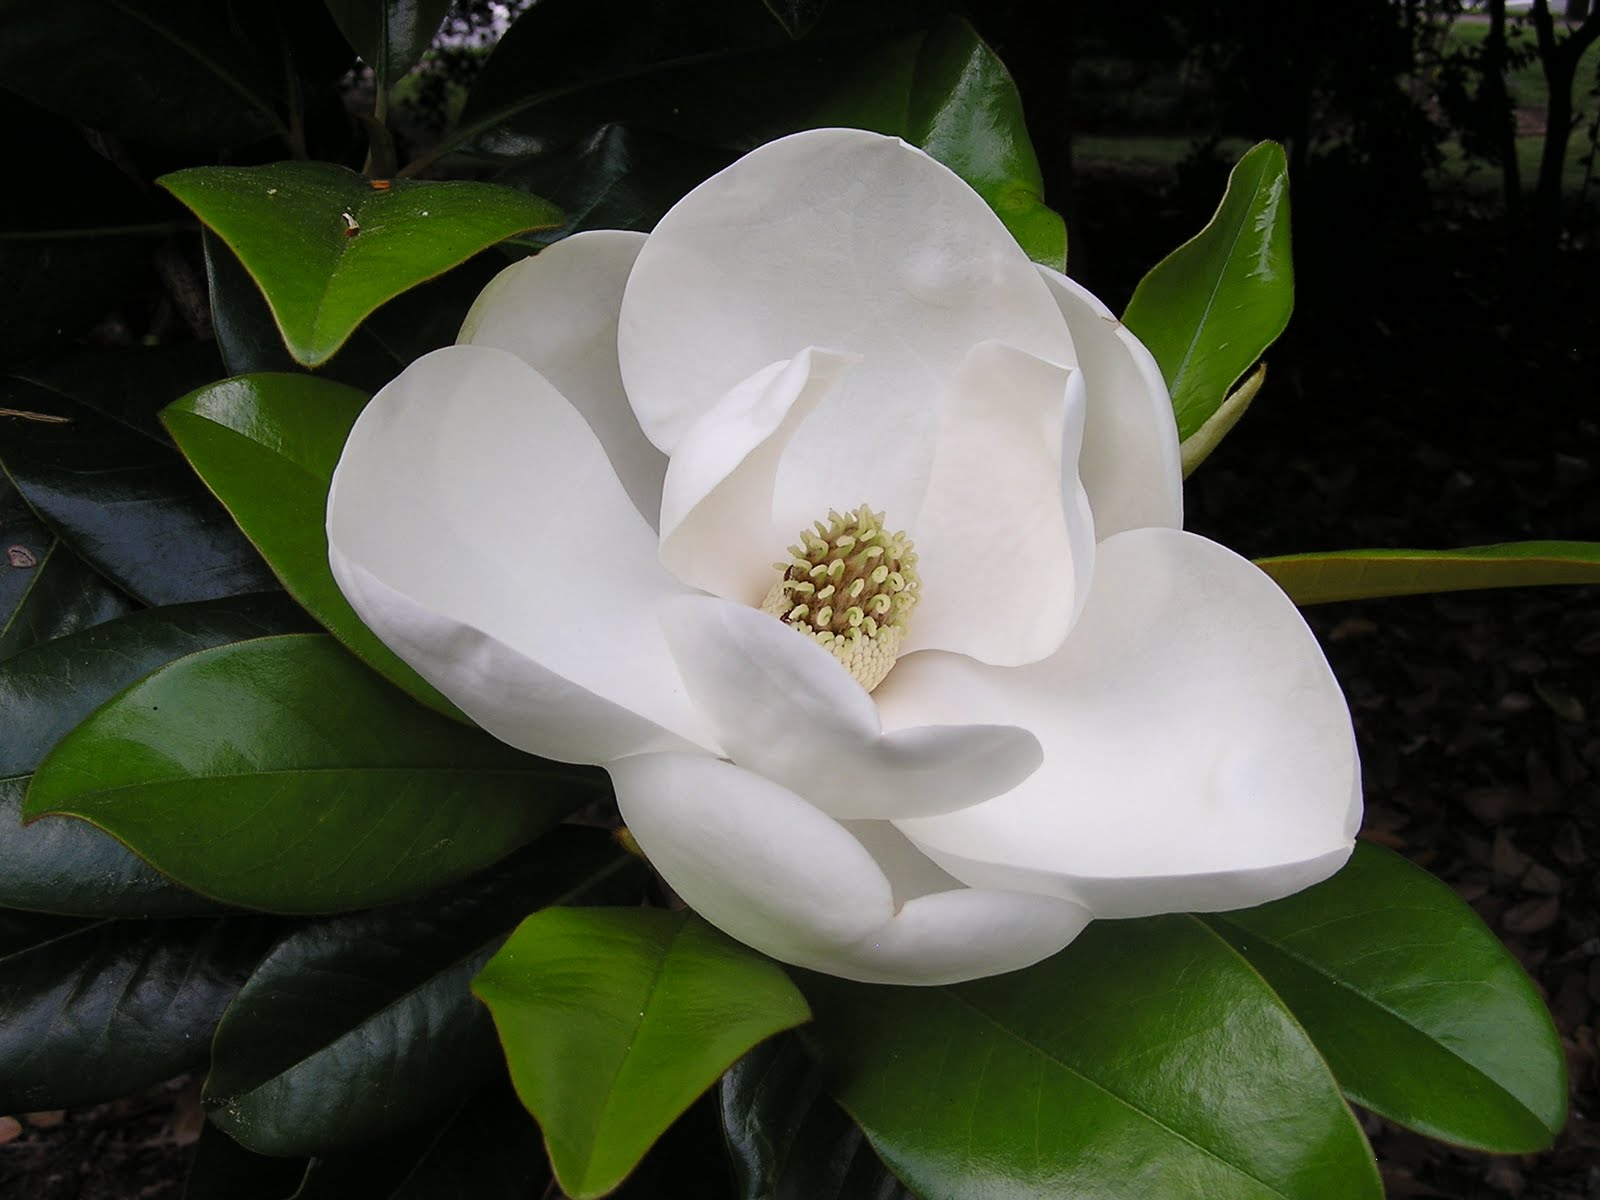 Magnolia Flower symbolism and astrological meanings in the zodiac ...